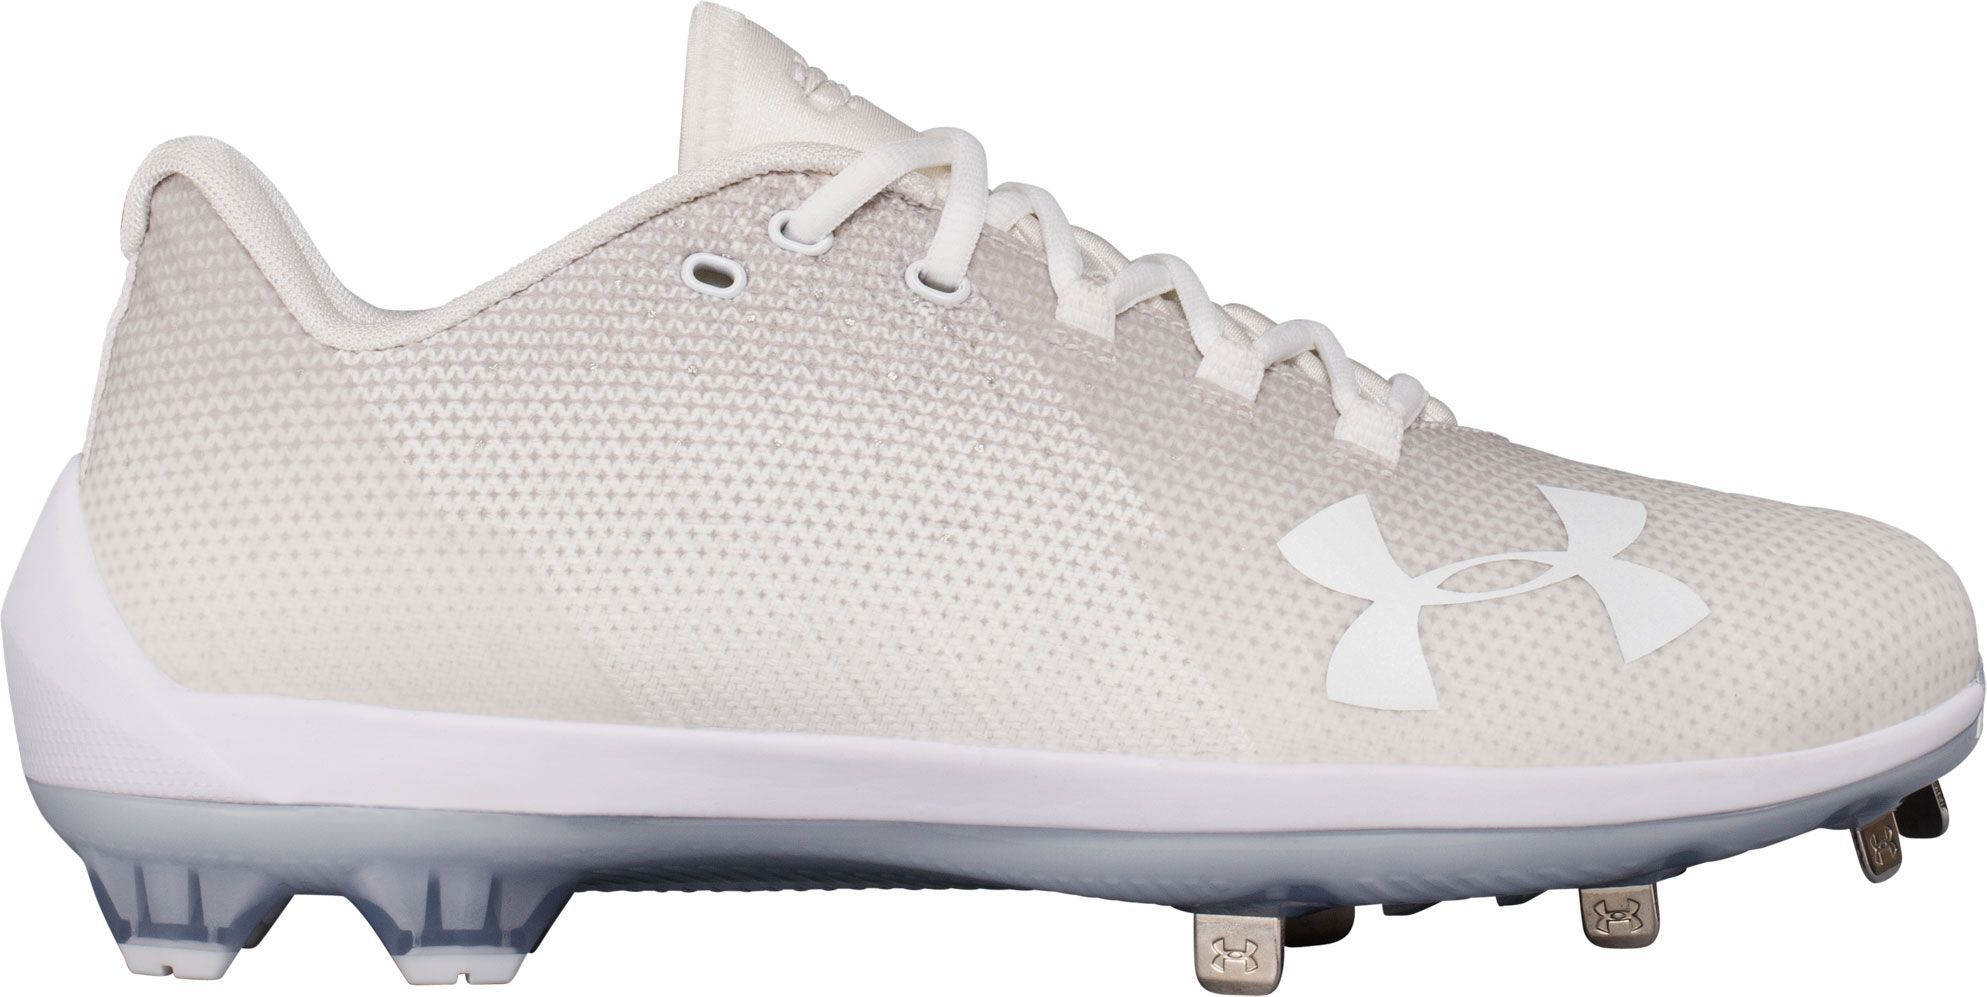 Photo of Under Armour Men's Harper Two Metal Baseball Cleats